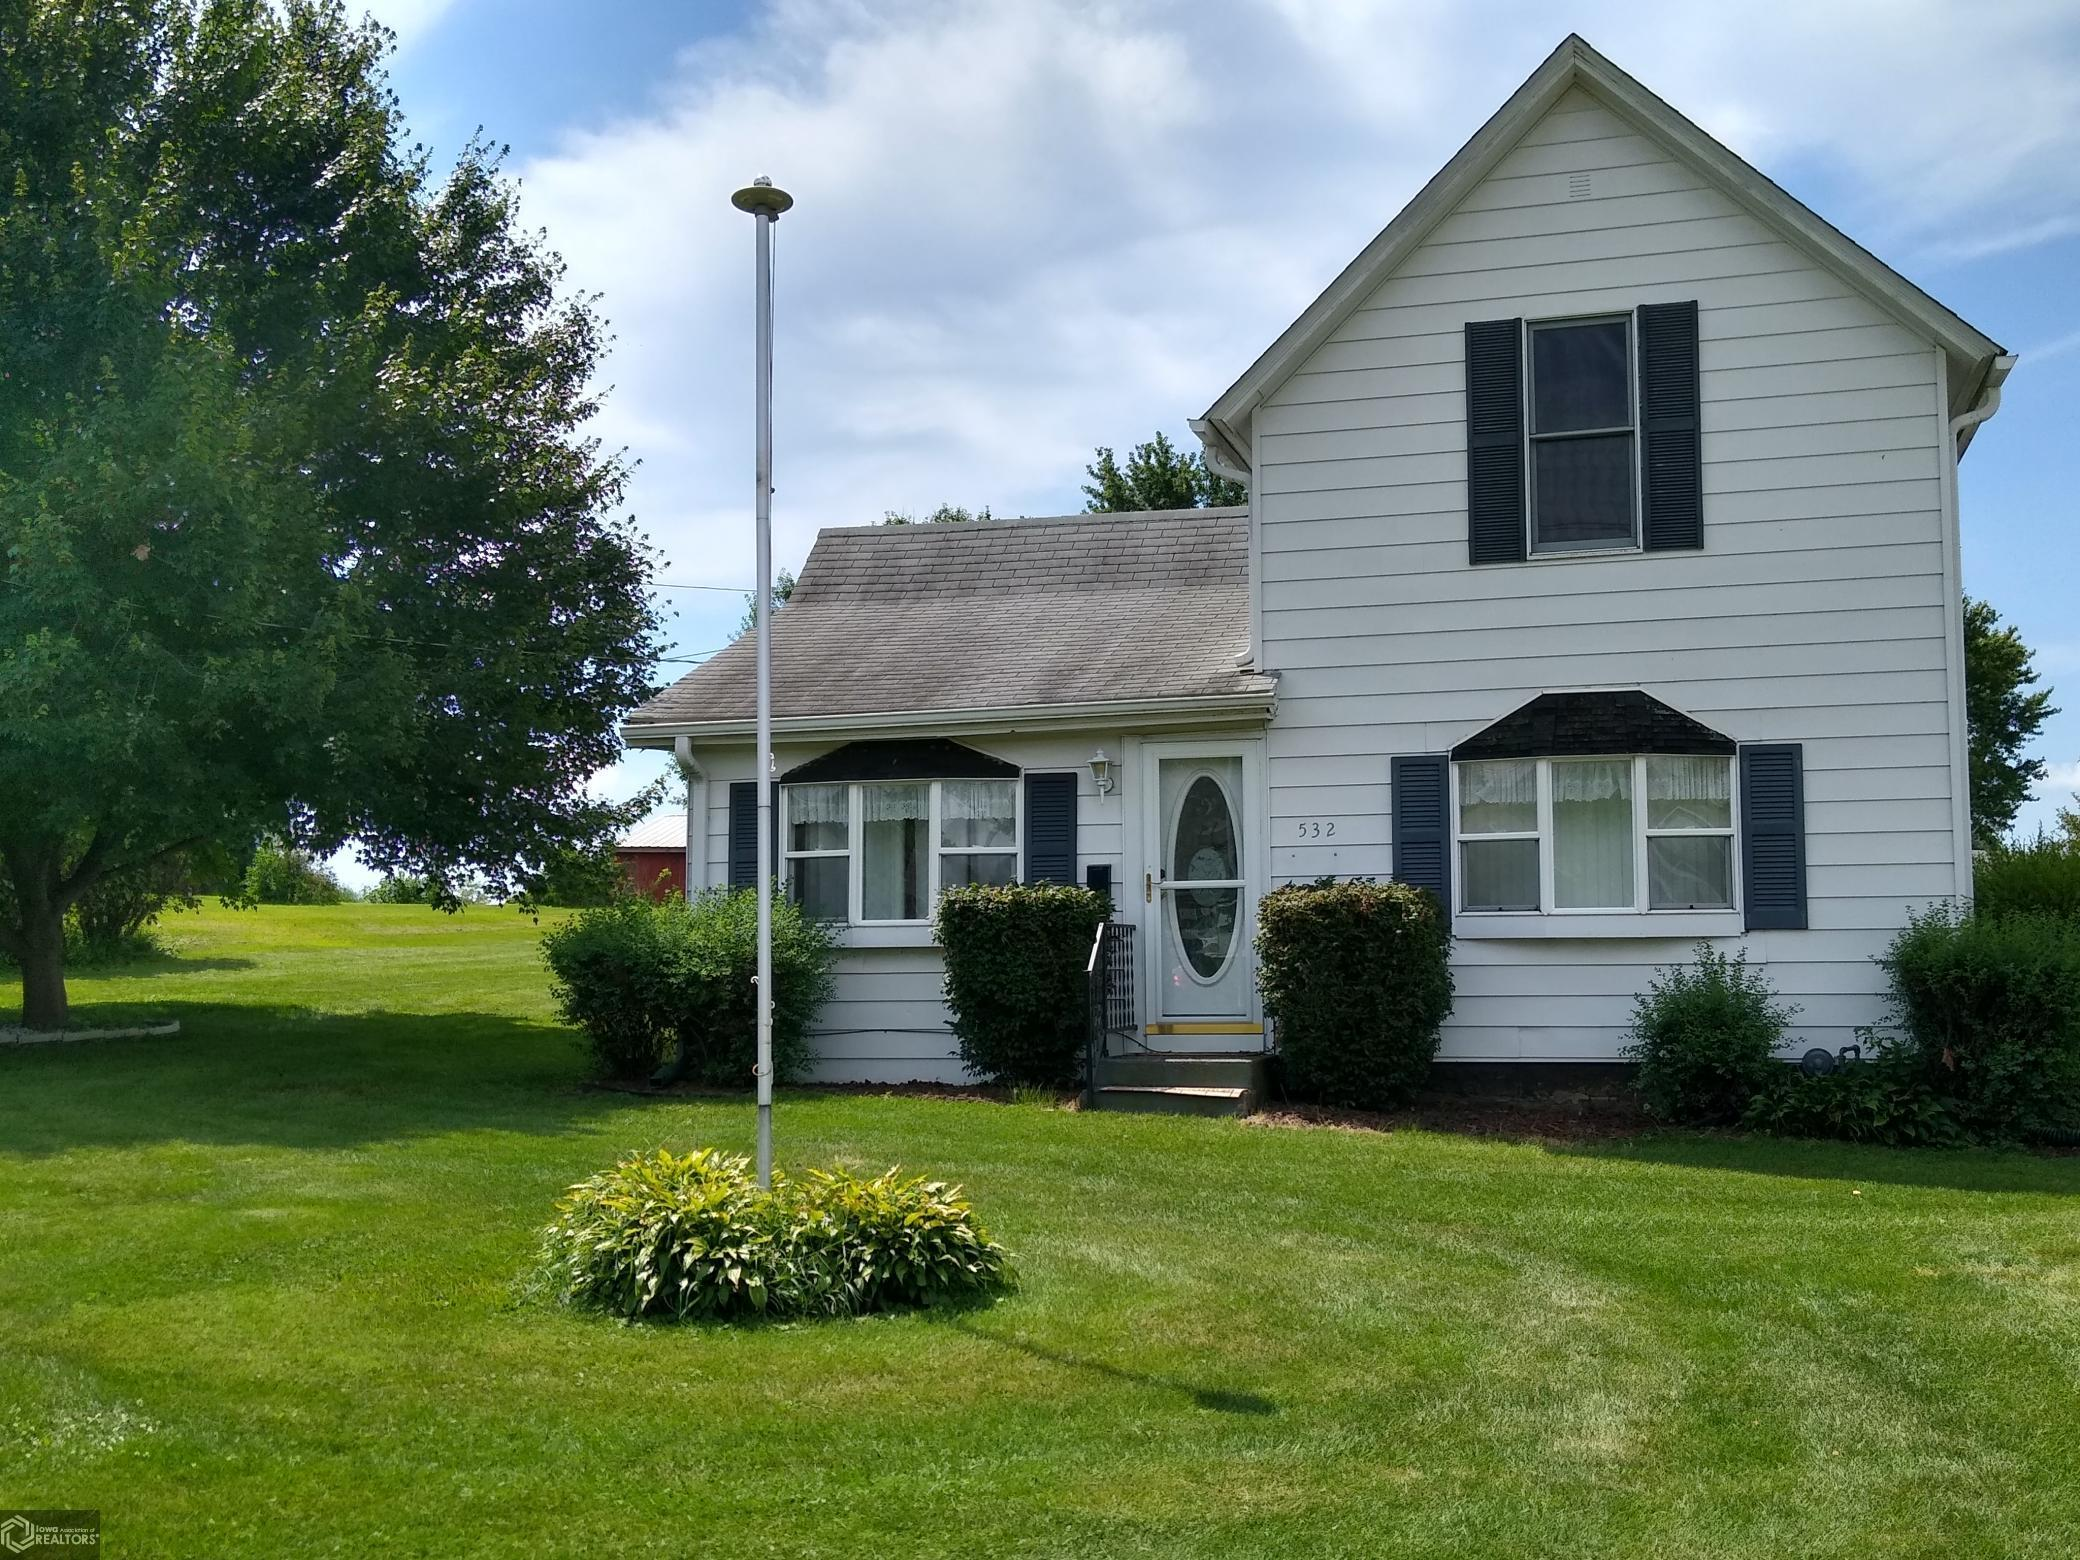 532 Harrison Property Photo - Grinnell, IA real estate listing